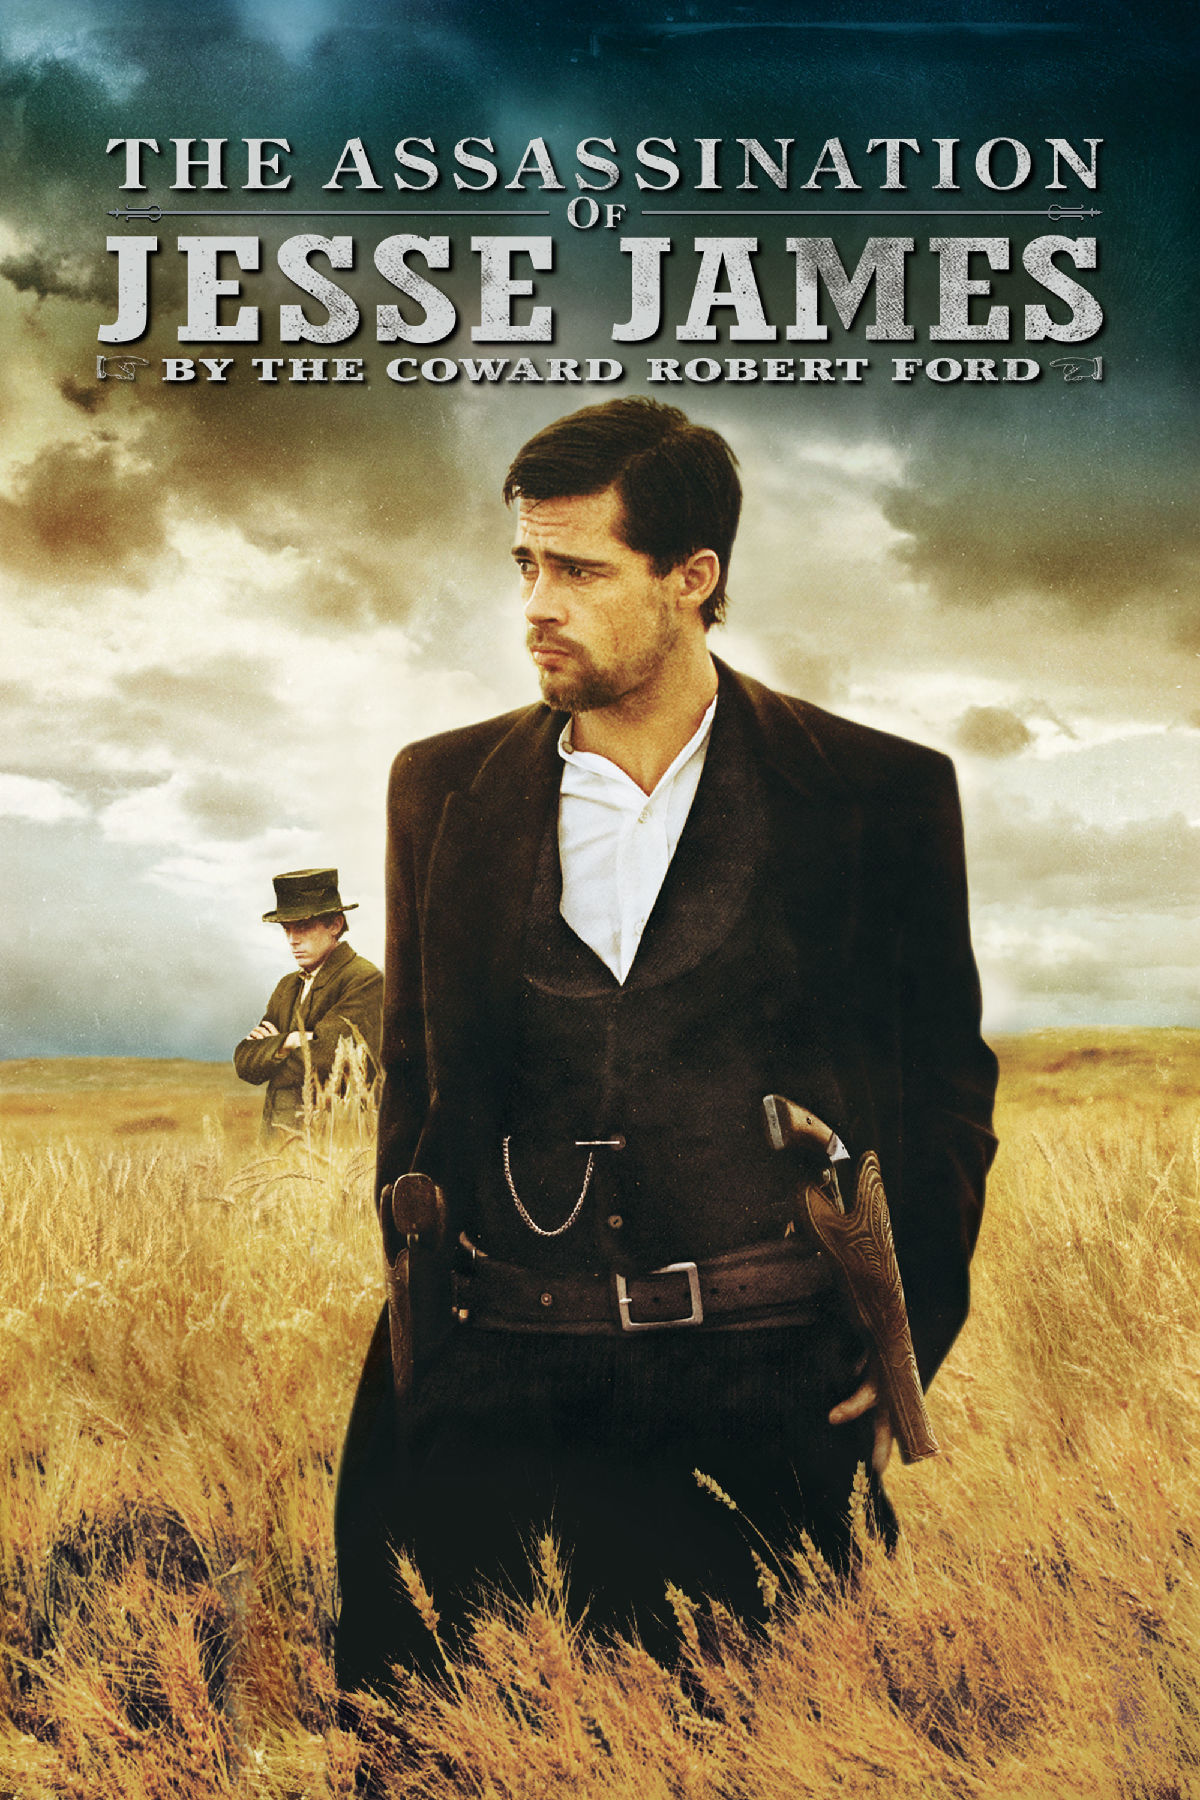 'The Assassination of Jesse James by the Coward Robert Ford' movie poster